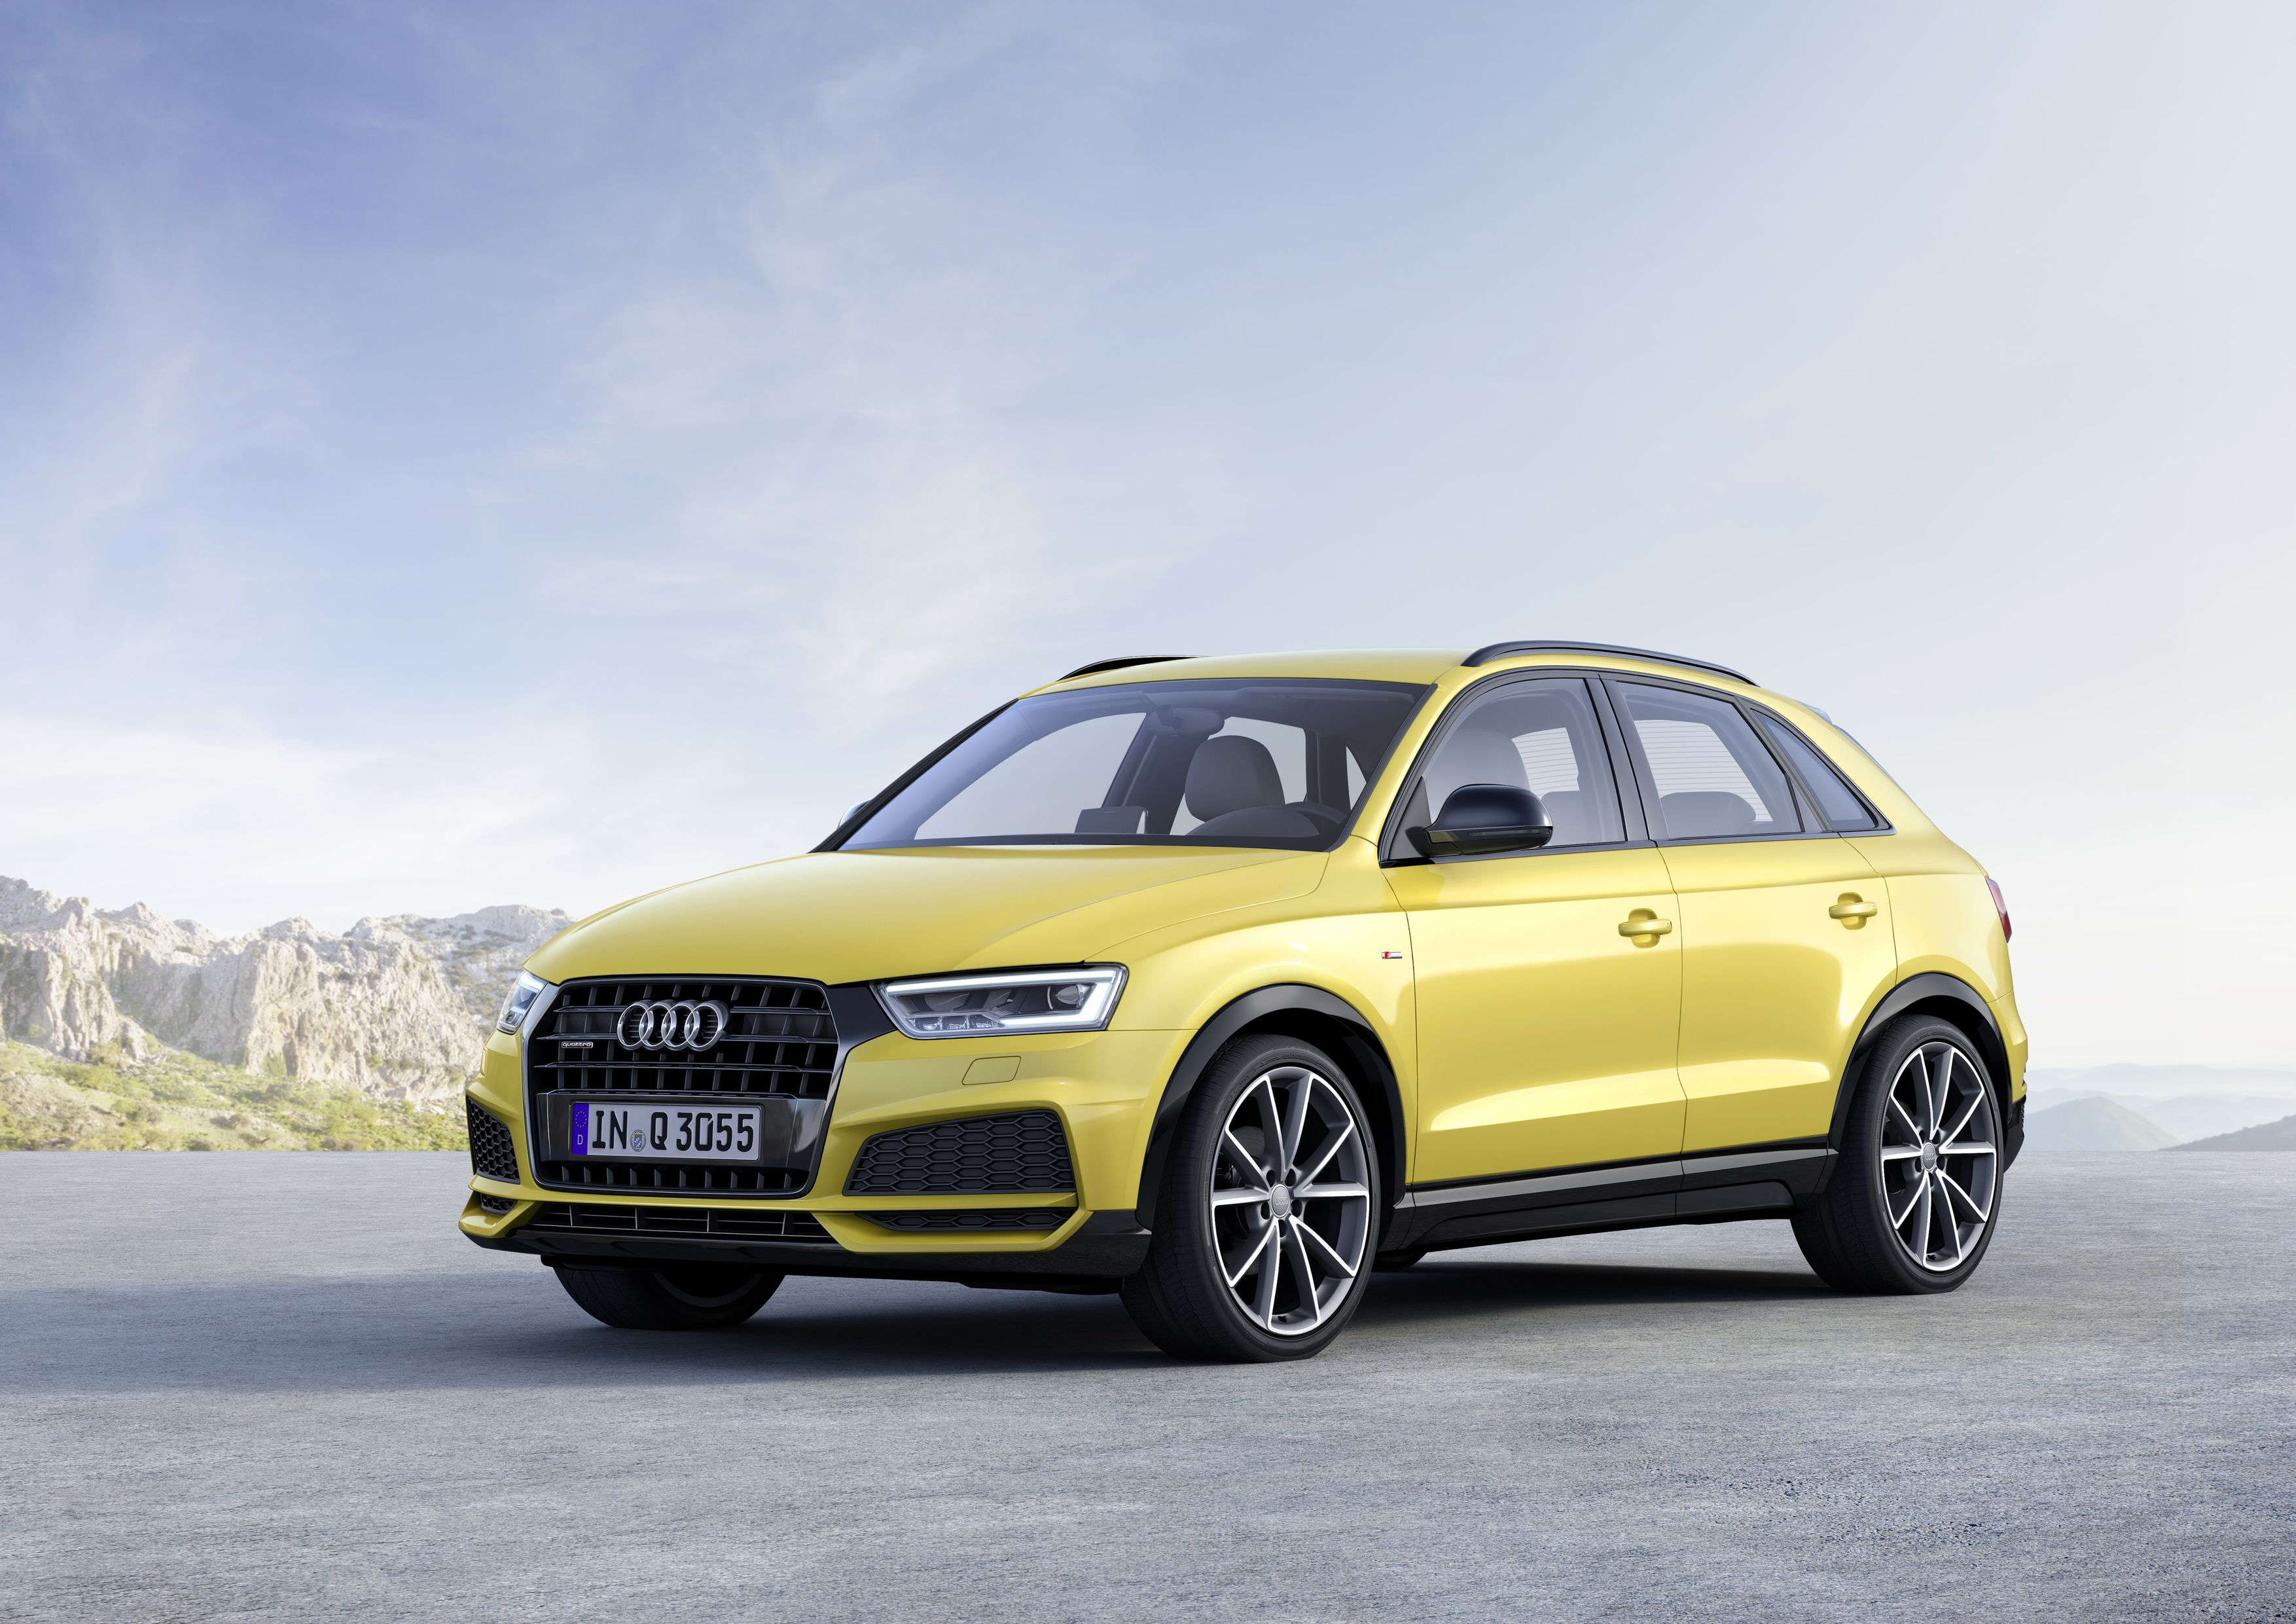 Next Gen Audi Q3 To Be Built On Mqb Gain Plug In Hybrid Variant Audi Q3 Suv Audi